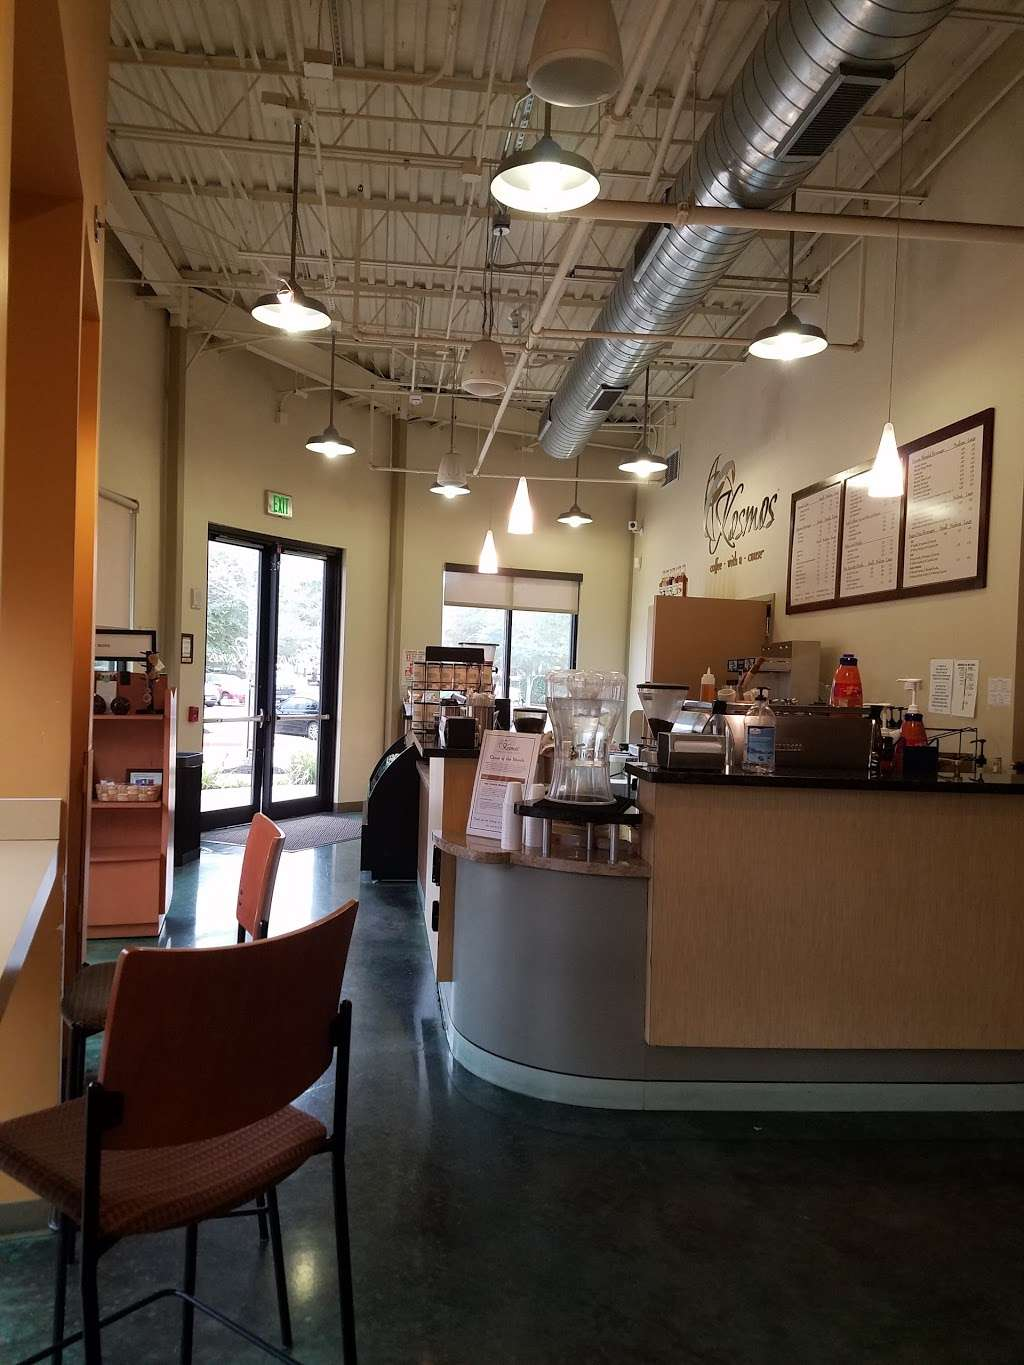 Kosmos Coffee Shop (Fellowship Church) - cafe  | Photo 9 of 10 | Address: 22765 Westheimer Pkwy, Katy, TX 77450, USA | Phone: (281) 395-4001